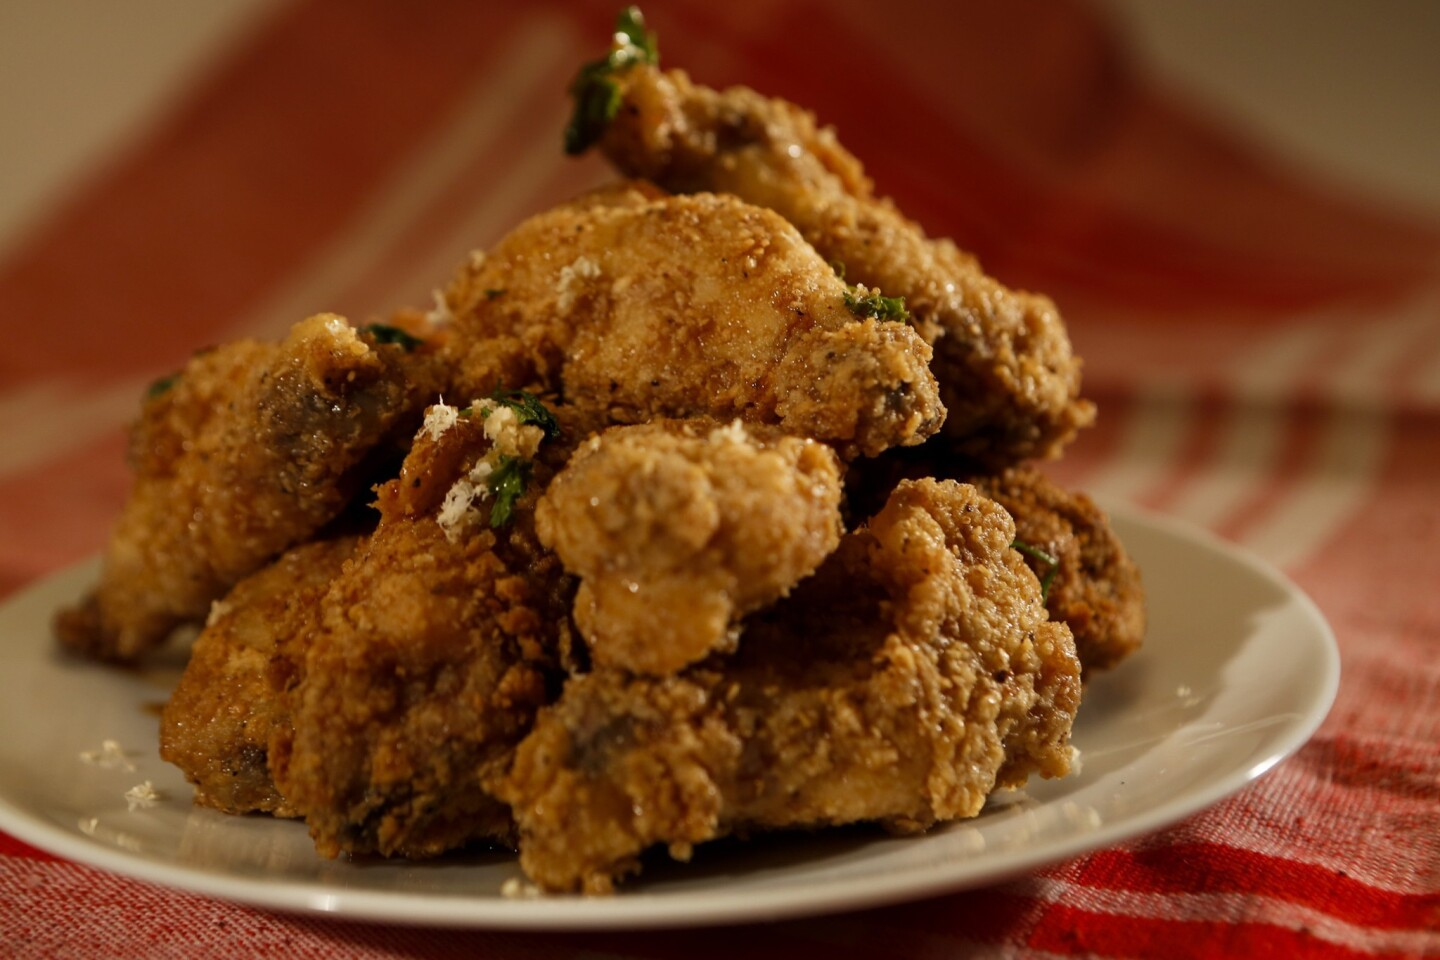 Crispy apple wings are flavored with fresh horseradish and curly parsley. Recipe: Apple wings